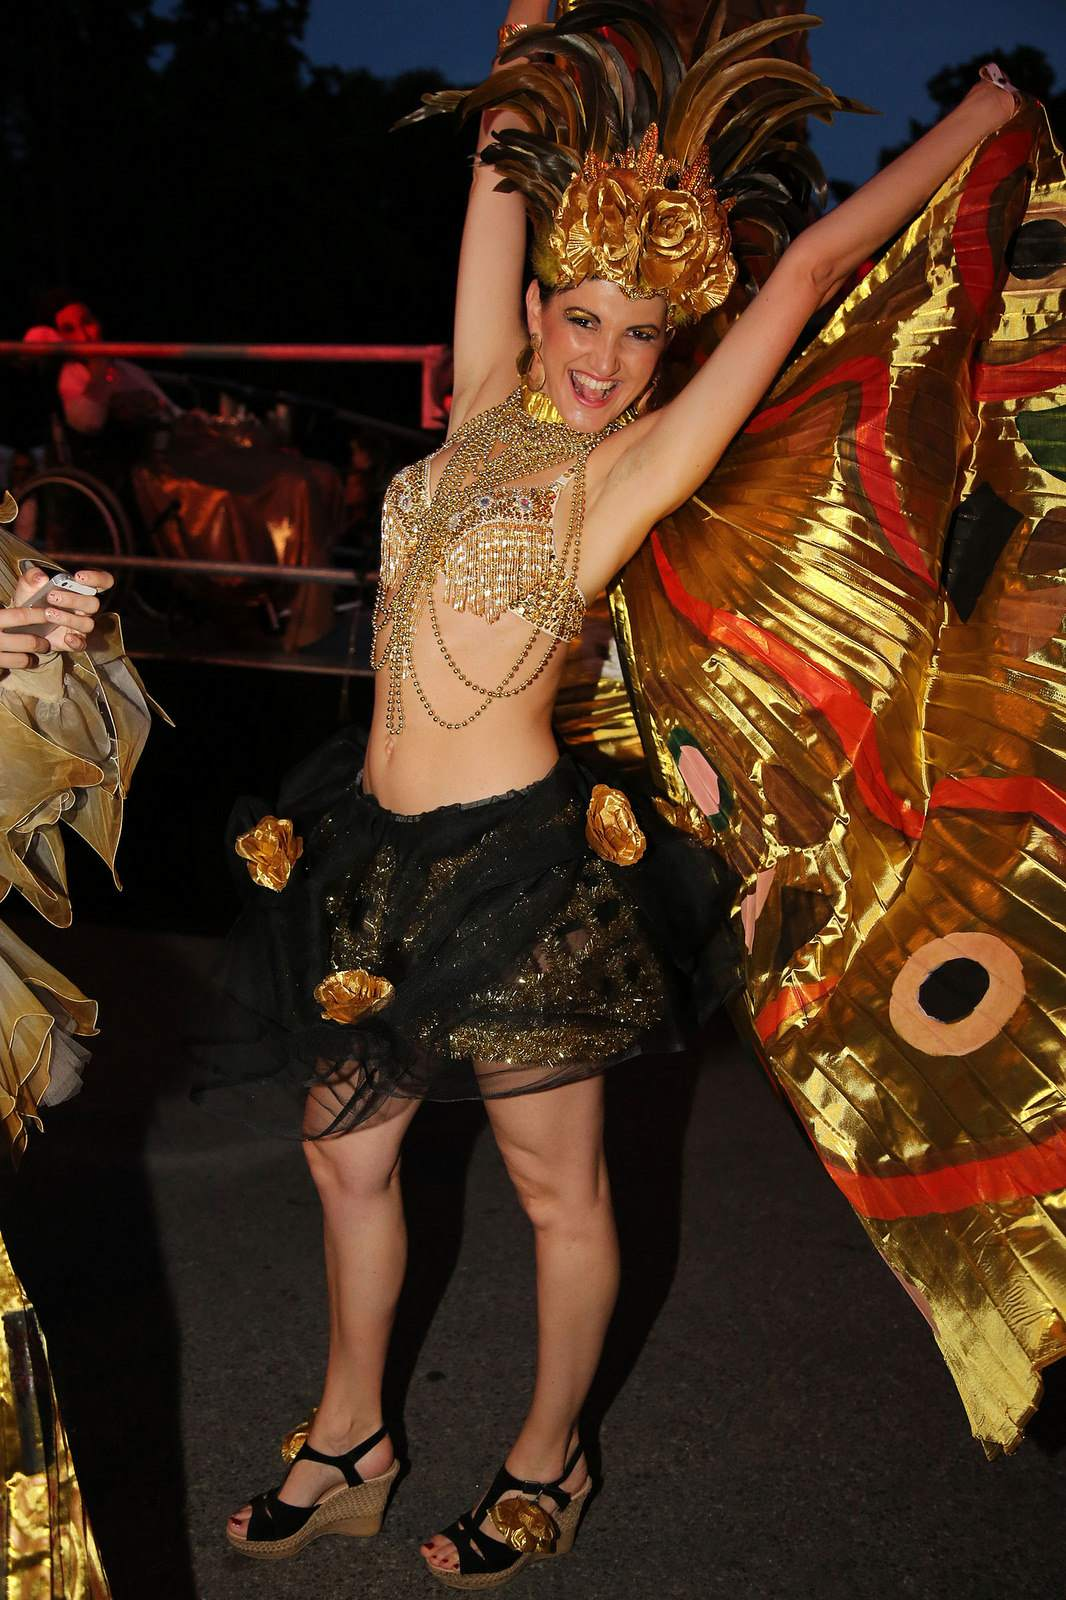 life ball1 Life Ball 2015 in Wien